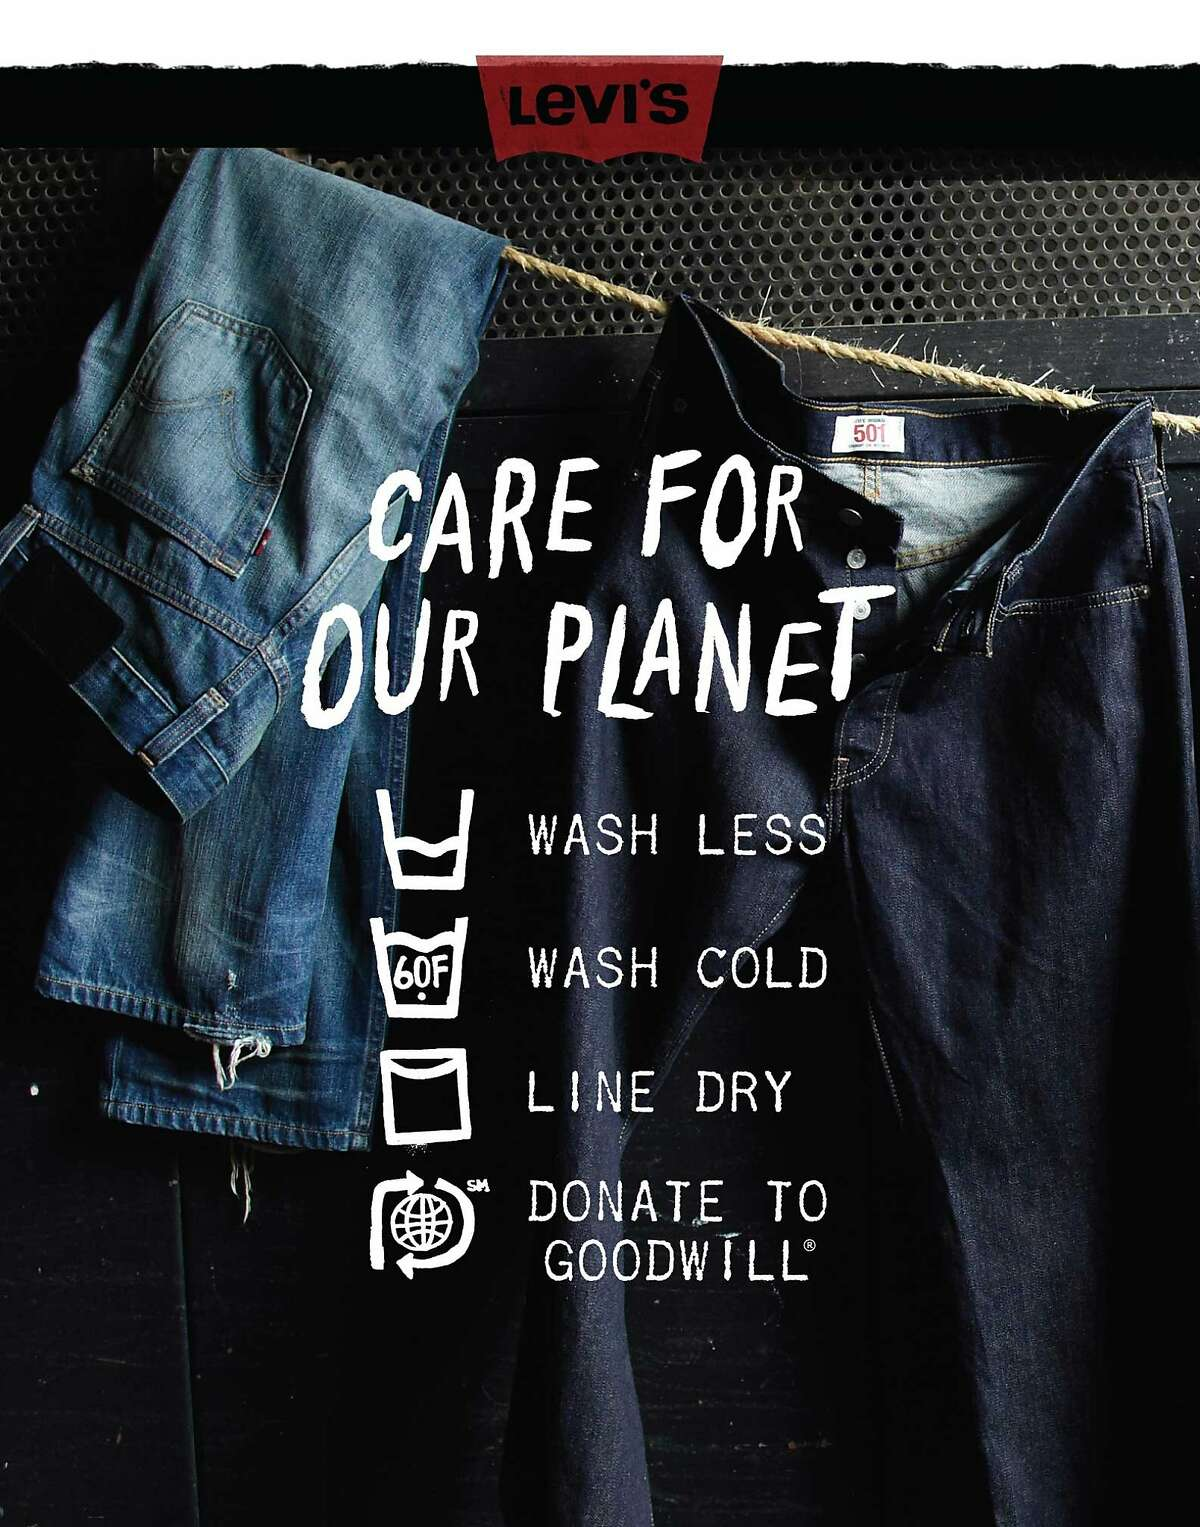 Levi's hang tag spells out its commitment to sustainability and cutting down fashion's impact on the environment.